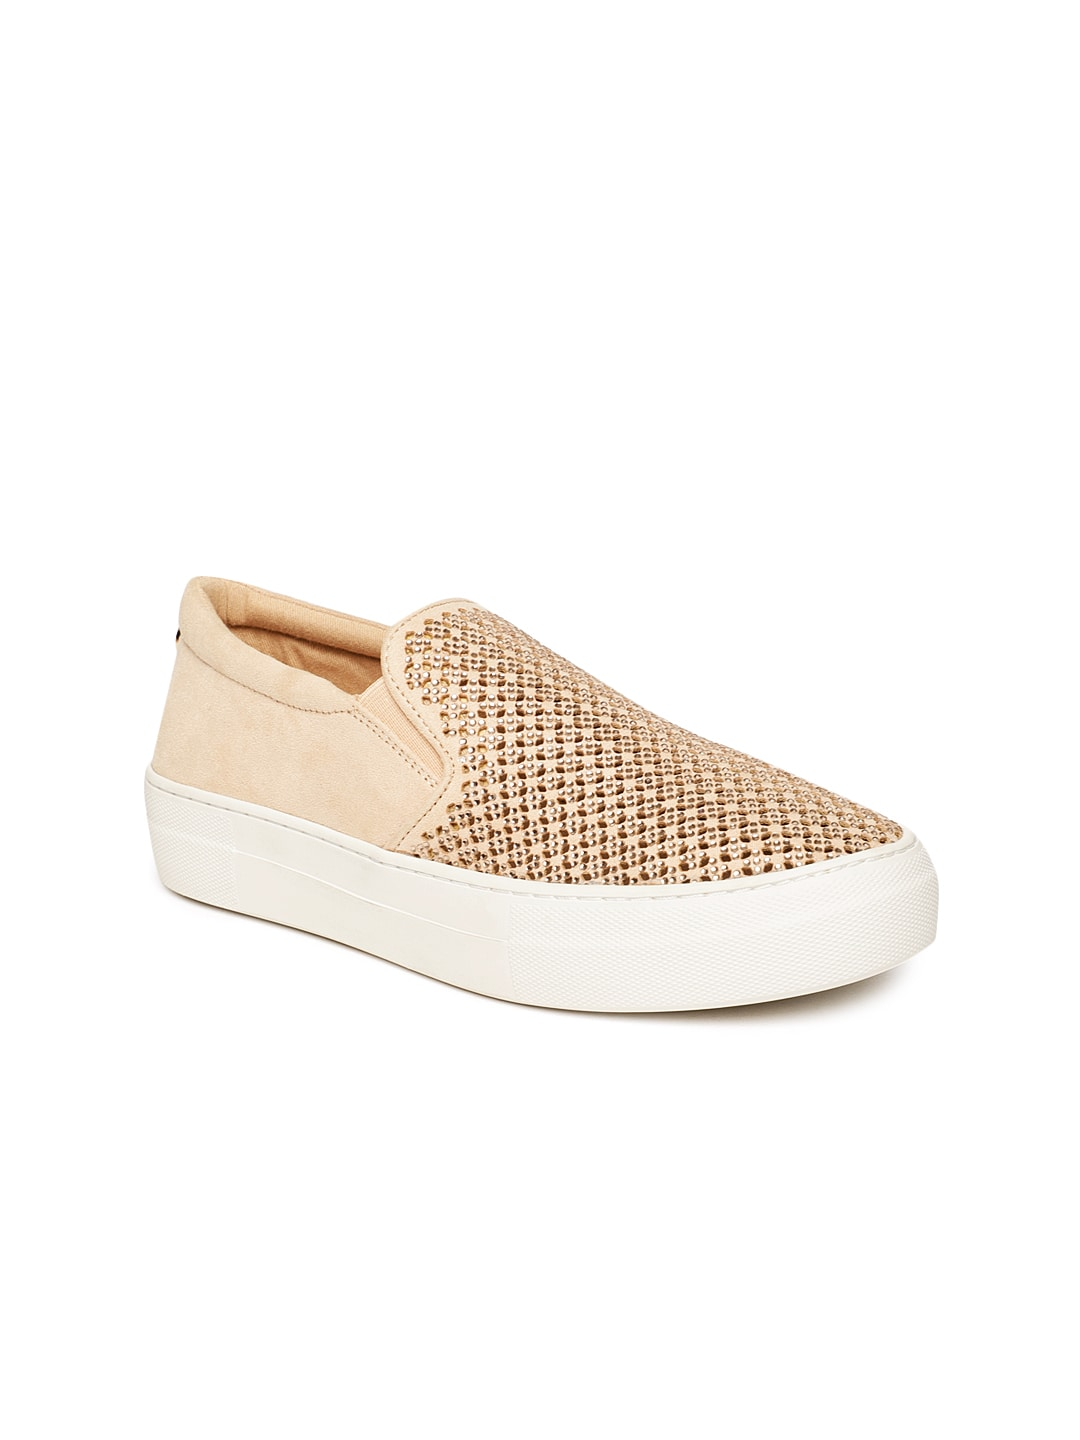 ad4aace3b66 Steve Madden Sneakers Casual Shoes - Buy Steve Madden Sneakers Casual Shoes  online in India